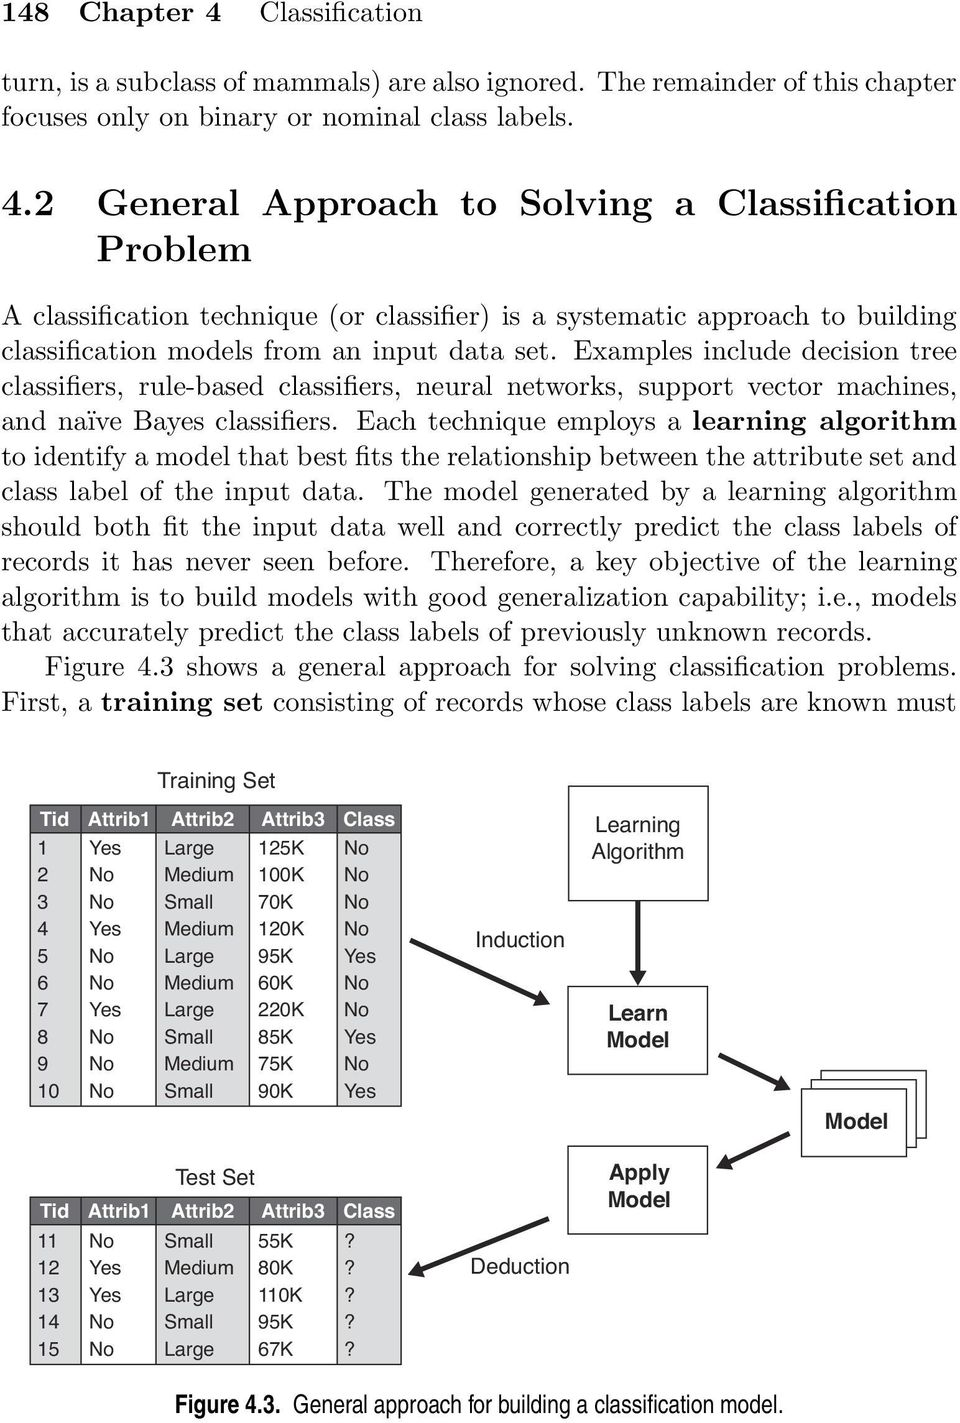 Each technique employs a learning algorithm to identify a model that best fits the relationship between the attribute set and class label of the input data.